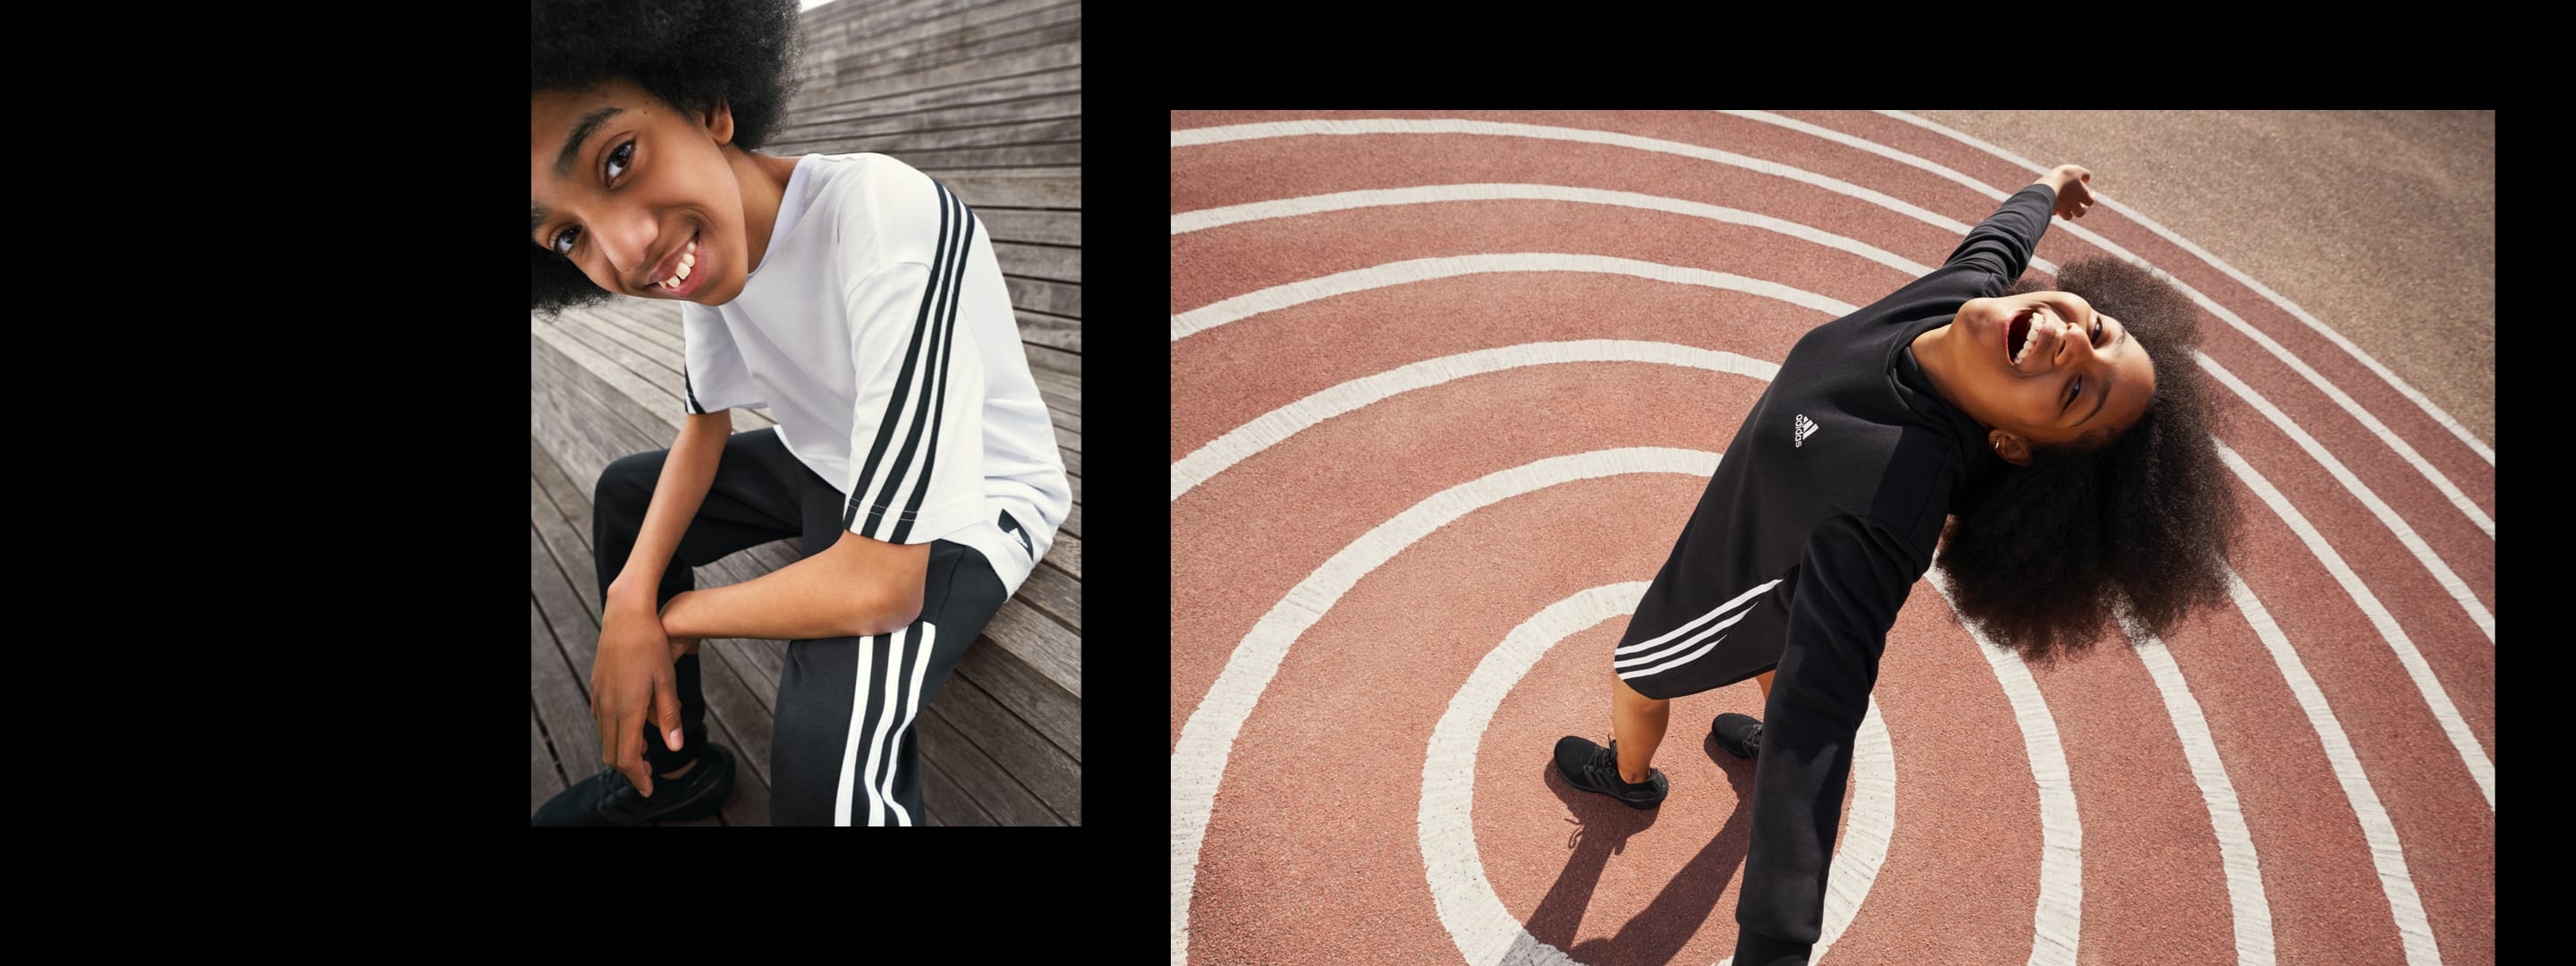 Two children wearing adidas clothing with the iconic three stripes.